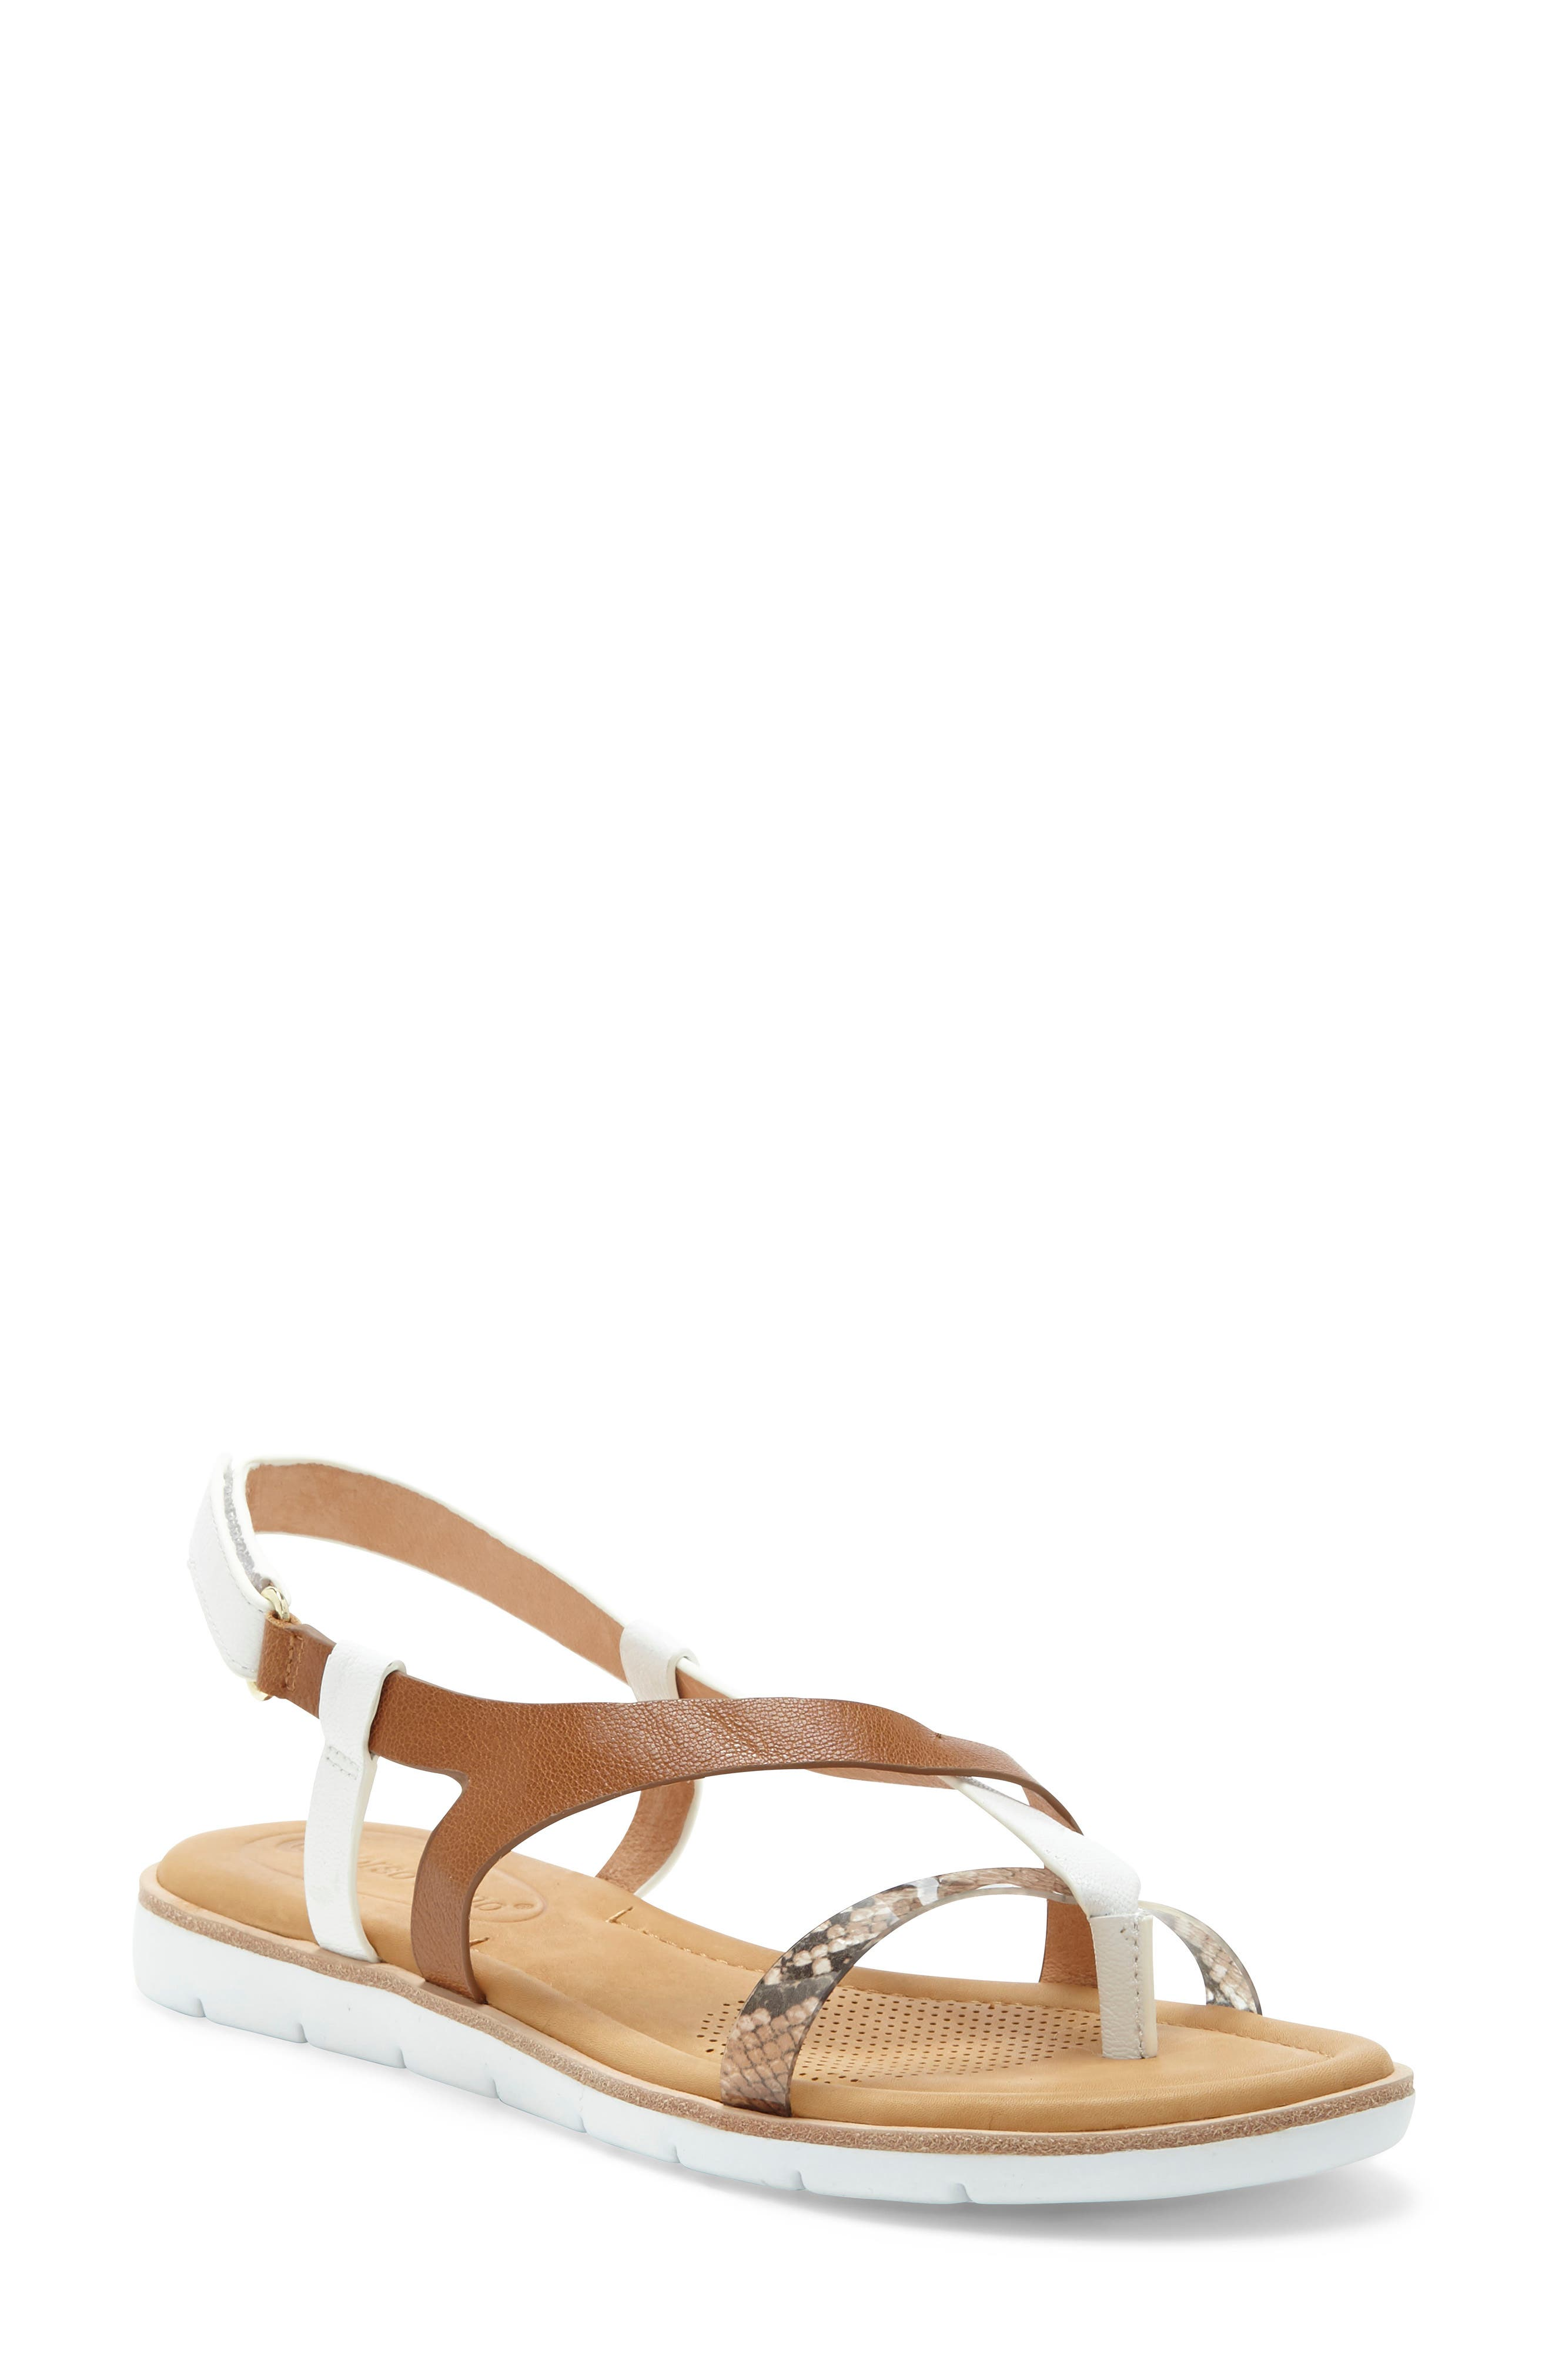 Asymmetrical straps securely wrap your foot in this sporty-chic sandal designed with a cushy footbed and airflow technology for all-day comfort and support. Style Name: Cc Corso Como Blessia Sandal (Women). Style Number: 6032418 1. Available in stores.